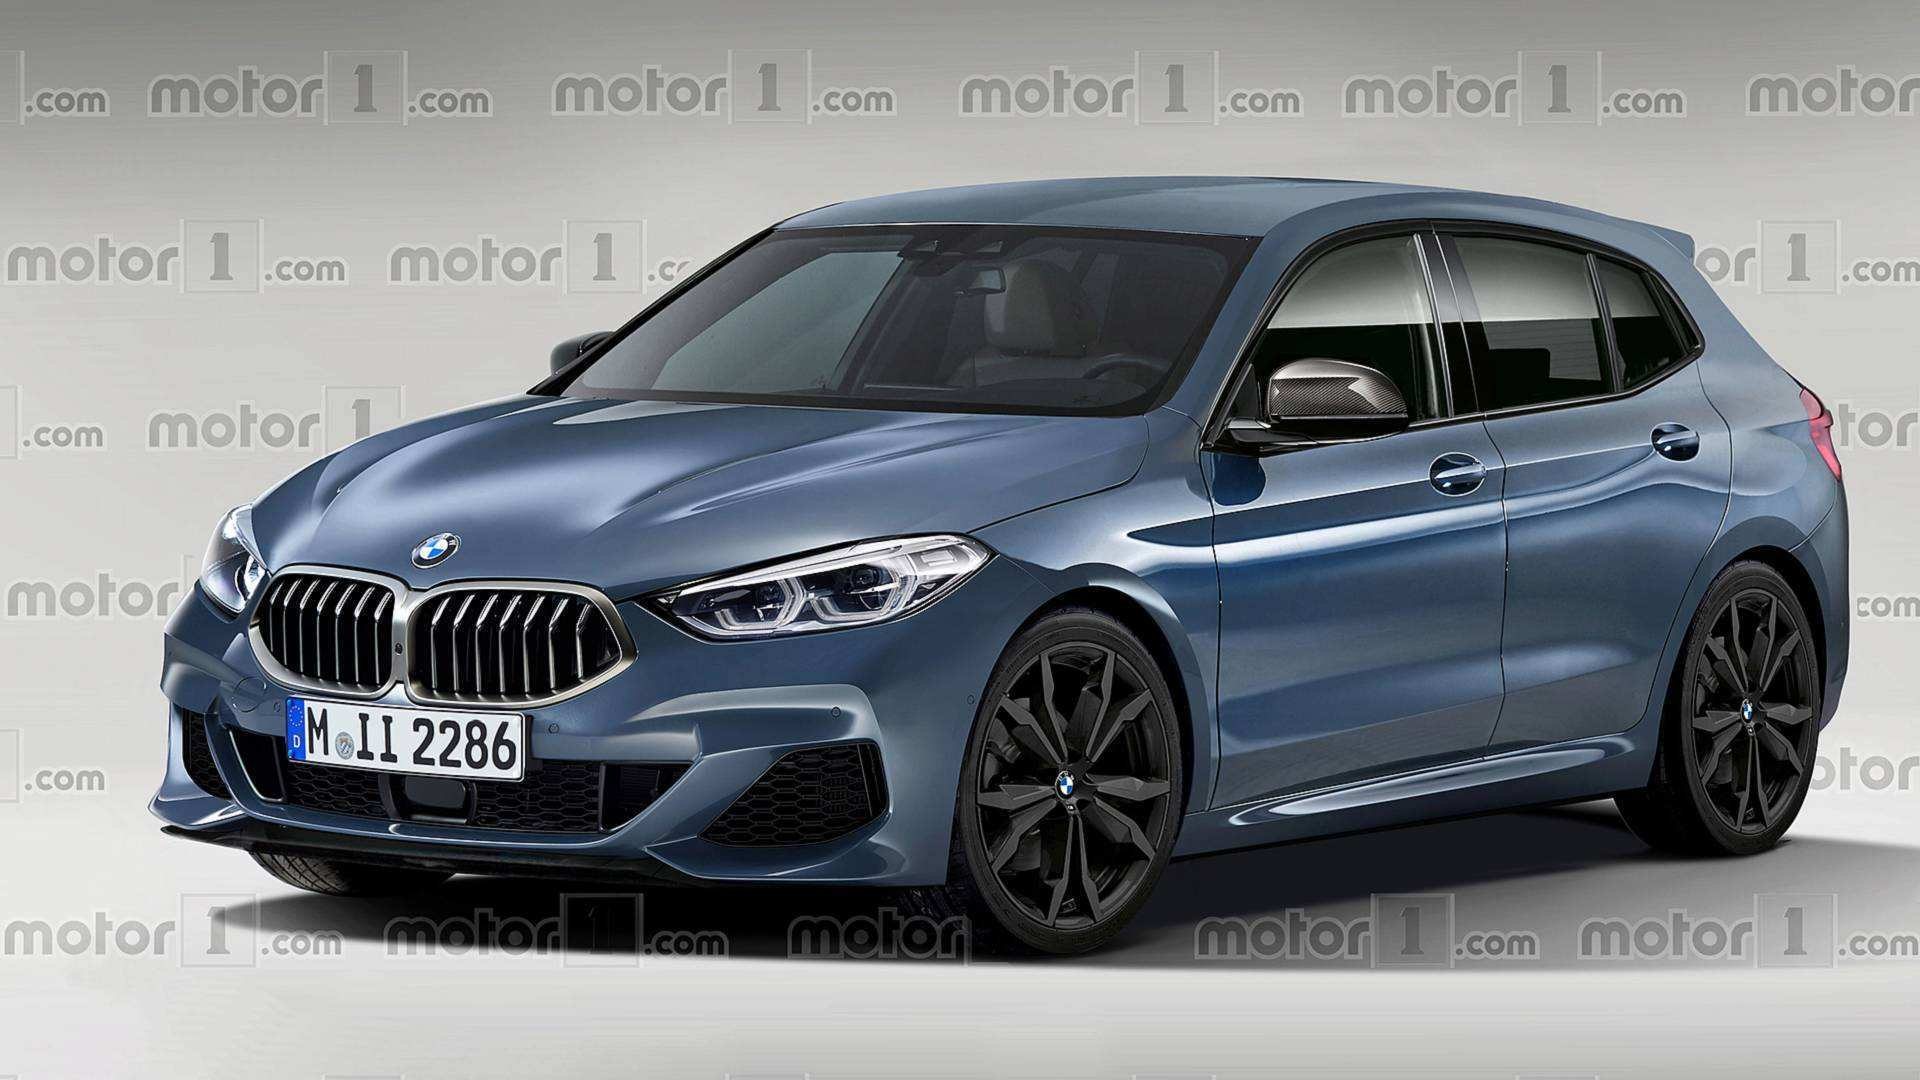 16 All New New 2019 Bmw 1 Series Release Date with New 2019 Bmw 1 Series